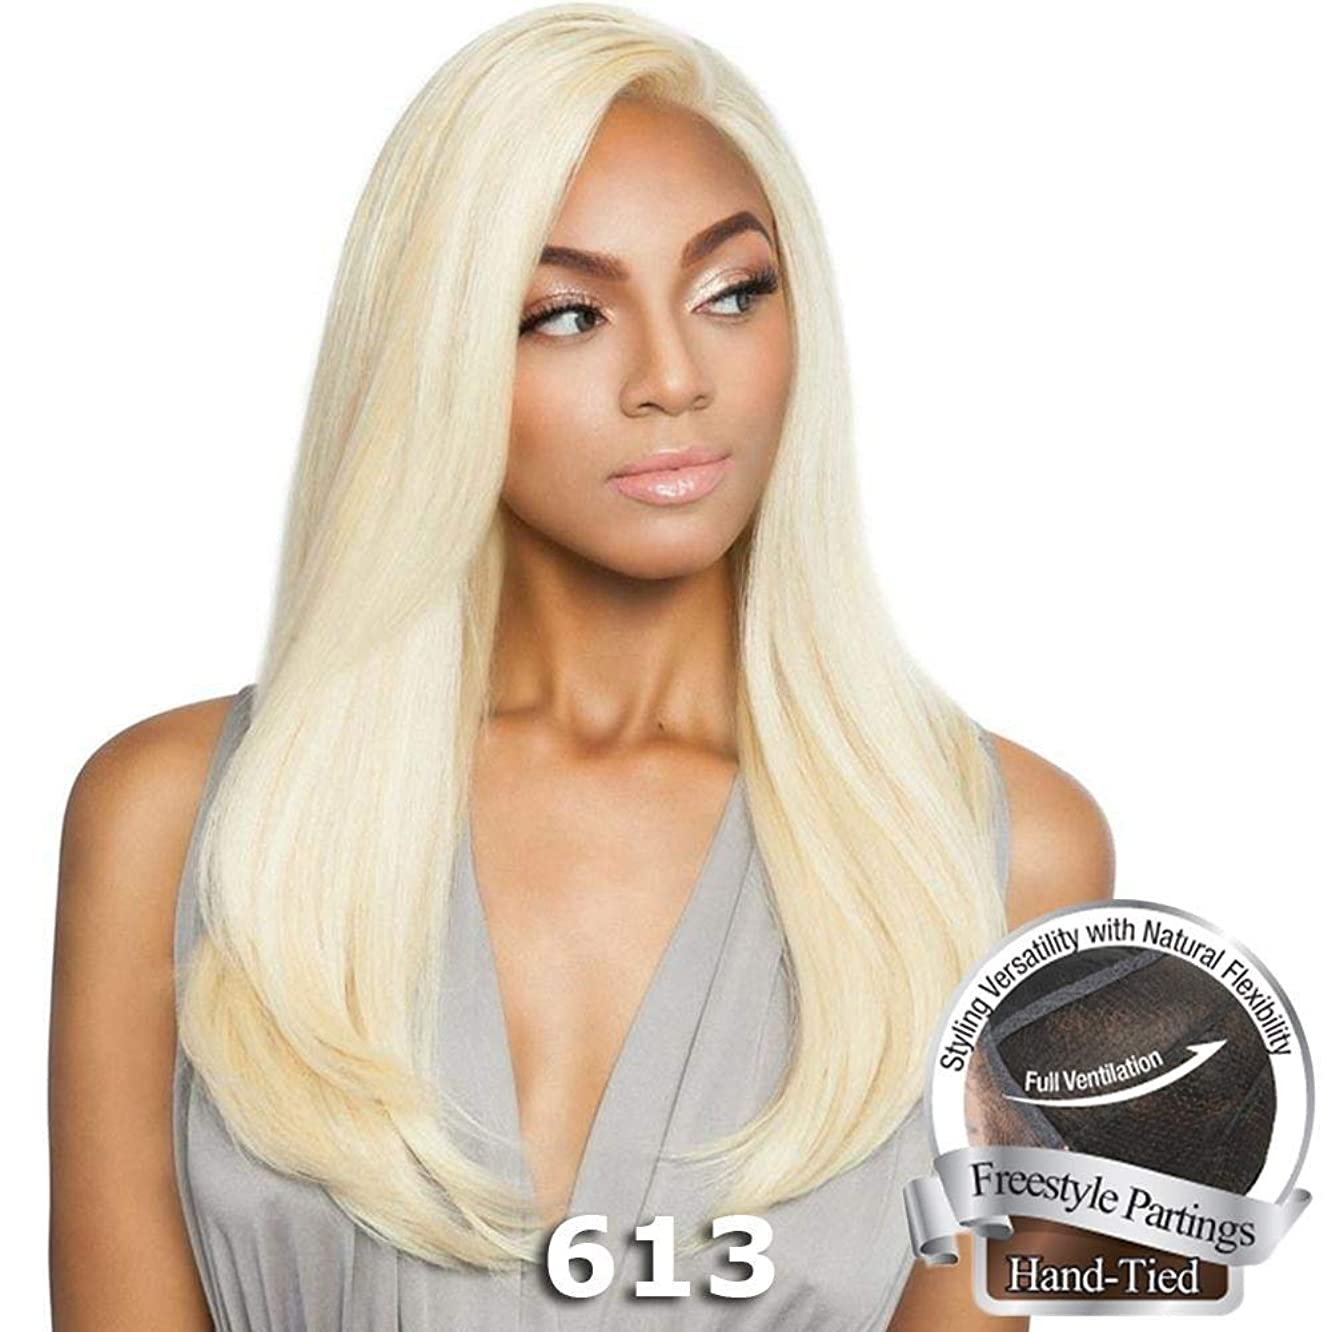 Brown Sugar Human Hair Blend Whole Lace Wig - BS411 Color: P4/27/30